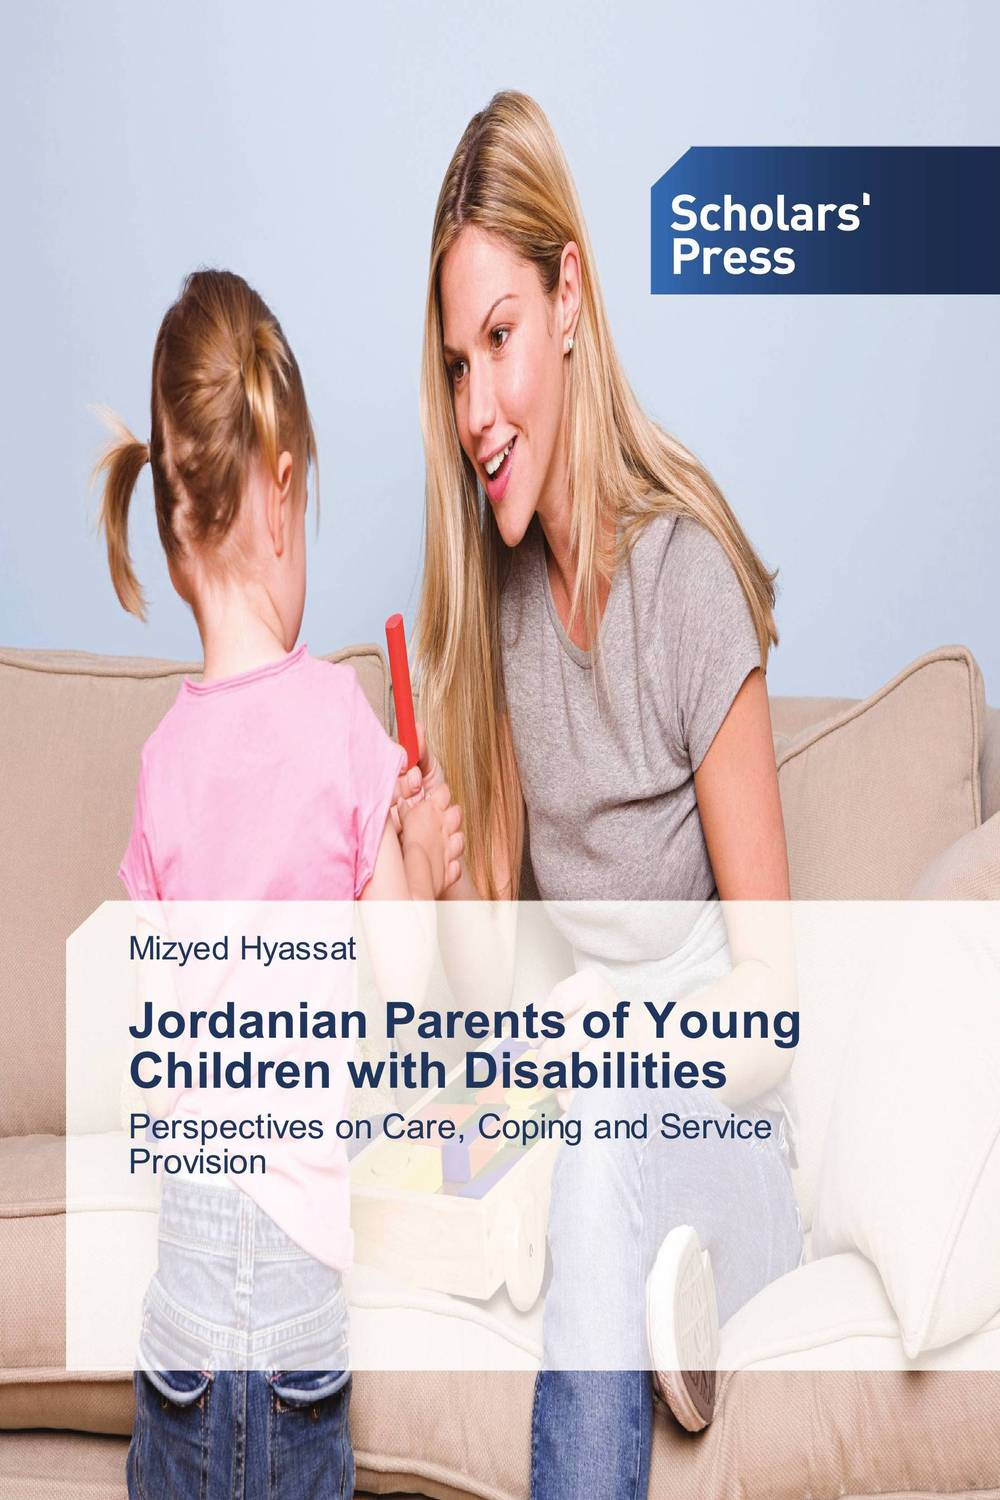 Jordanian Parents of Young Children with Disabilities fly–fishing with children – a guide for parents page 8